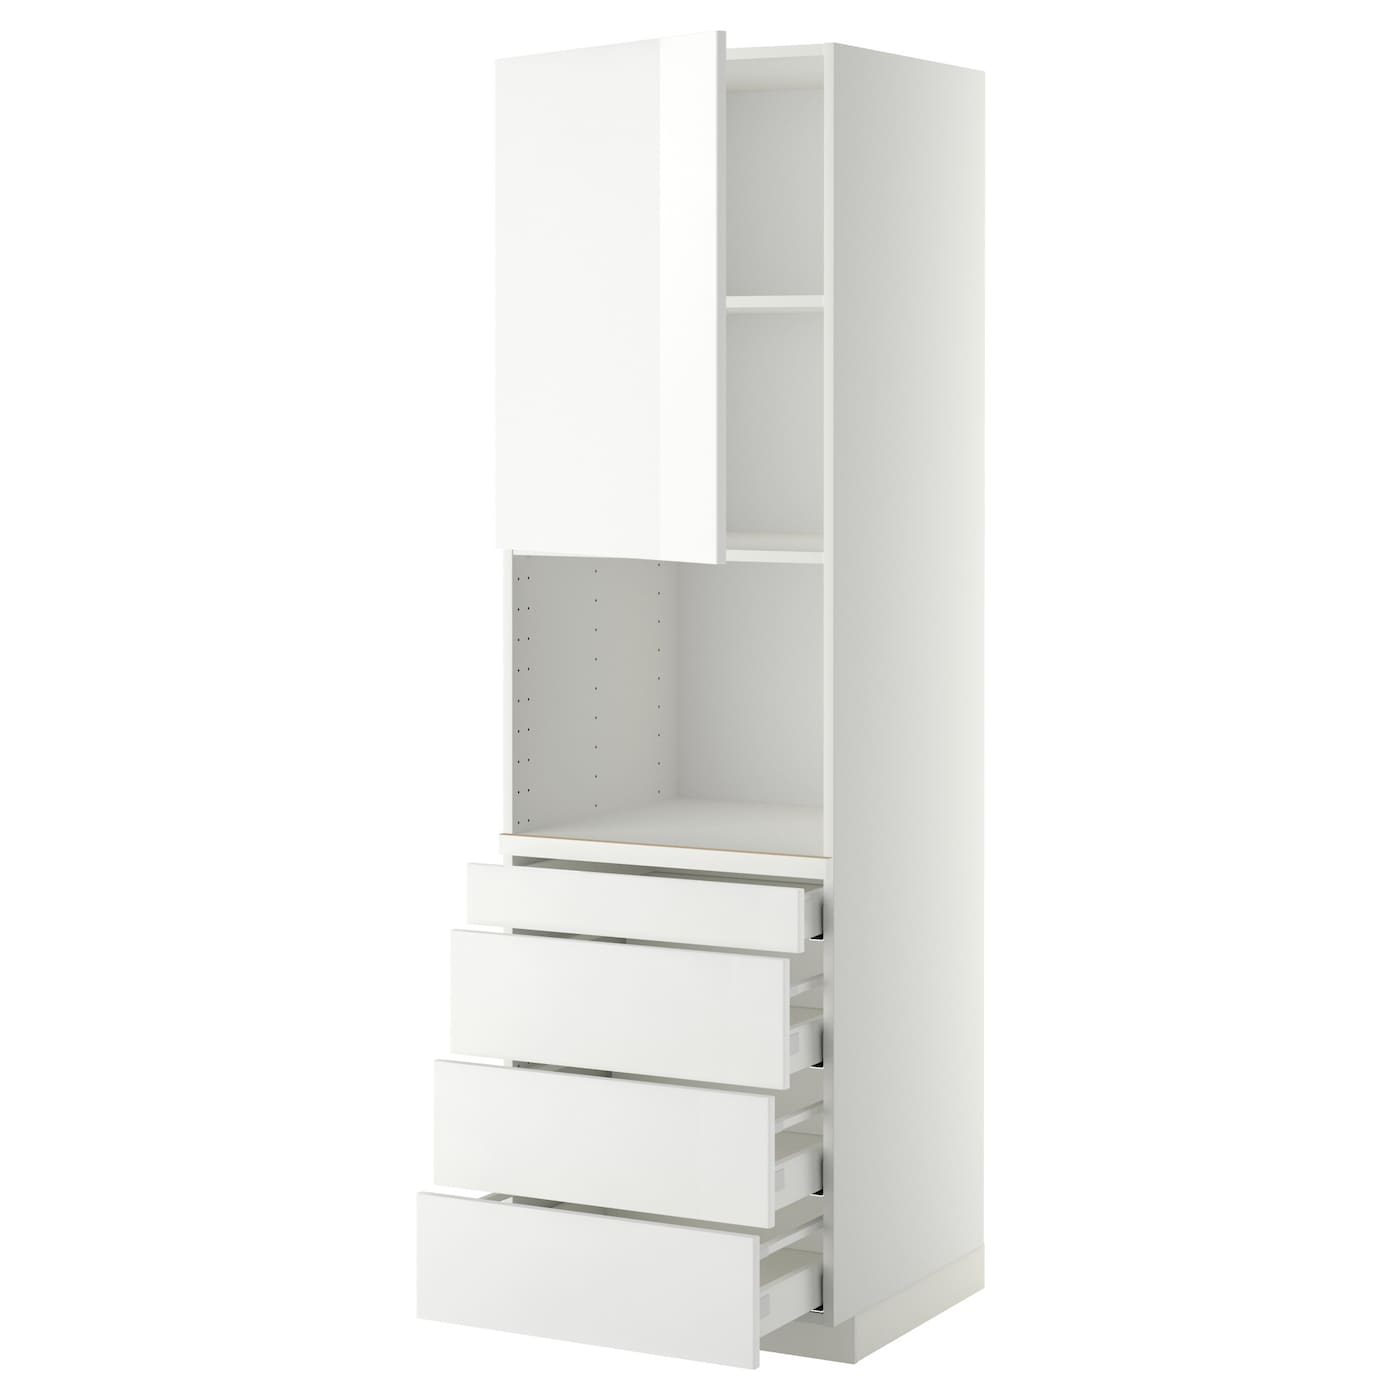 IKEA METOD/MAXIMERA high cab for combi micro/4 drawers Sturdy frame construction, 18 mm thick.